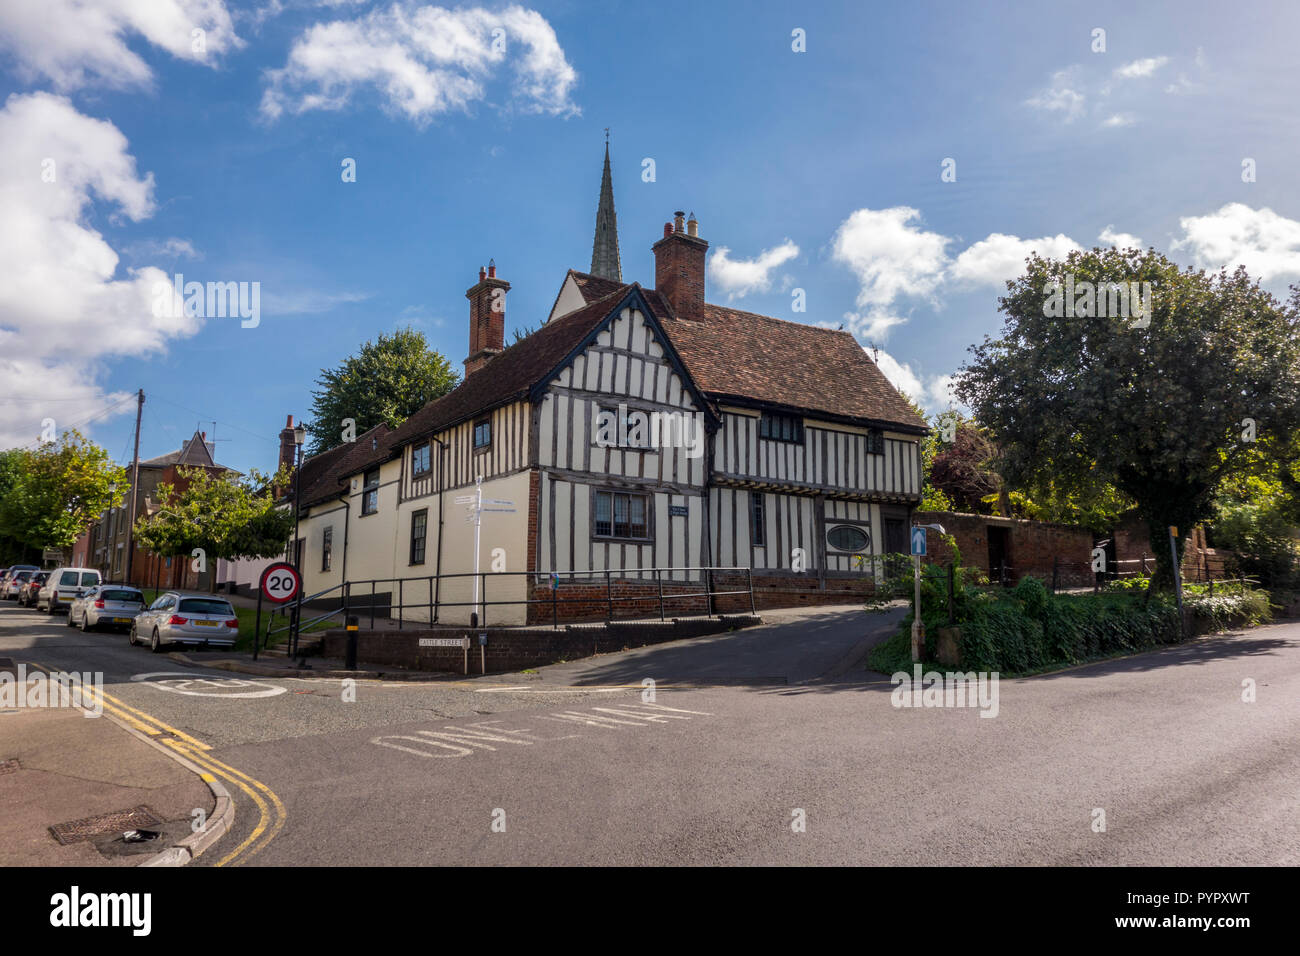 Historic timber framed building, Saffron Walden, historic market town in Uttlesford, Essex, UK - Stock Image